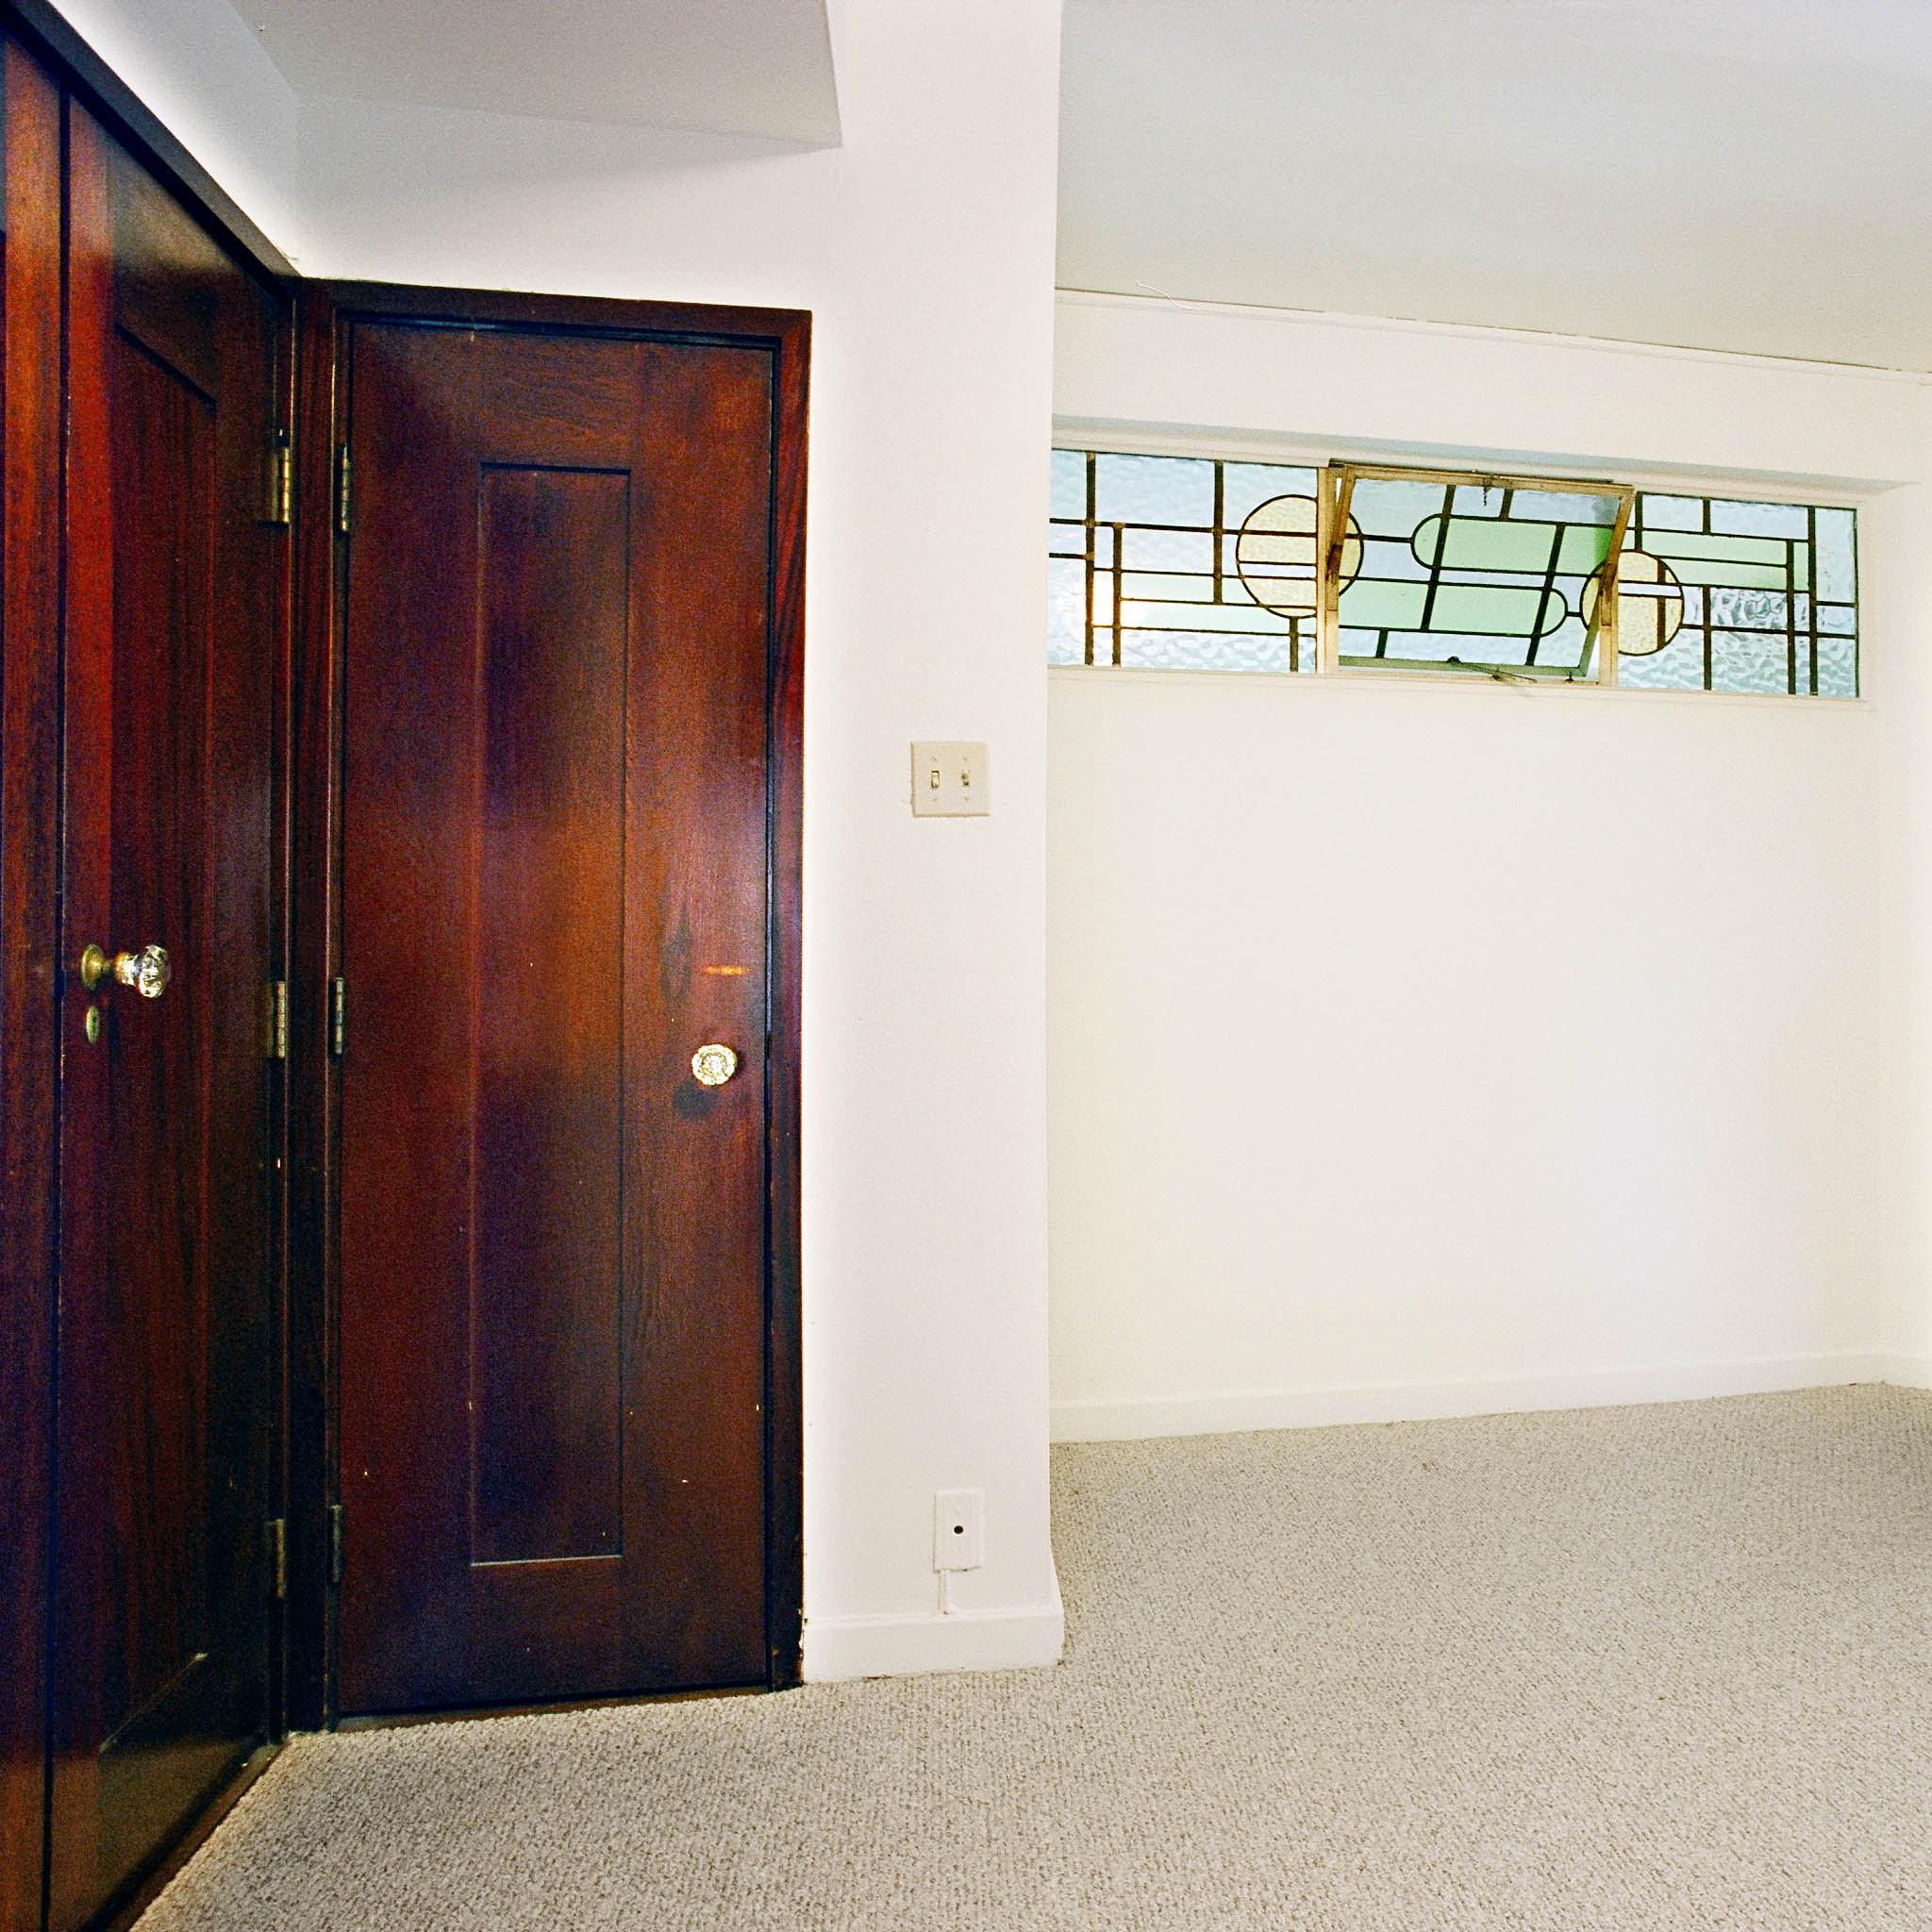 interior of 340 S. Highland Ave, Apt. 3A 8